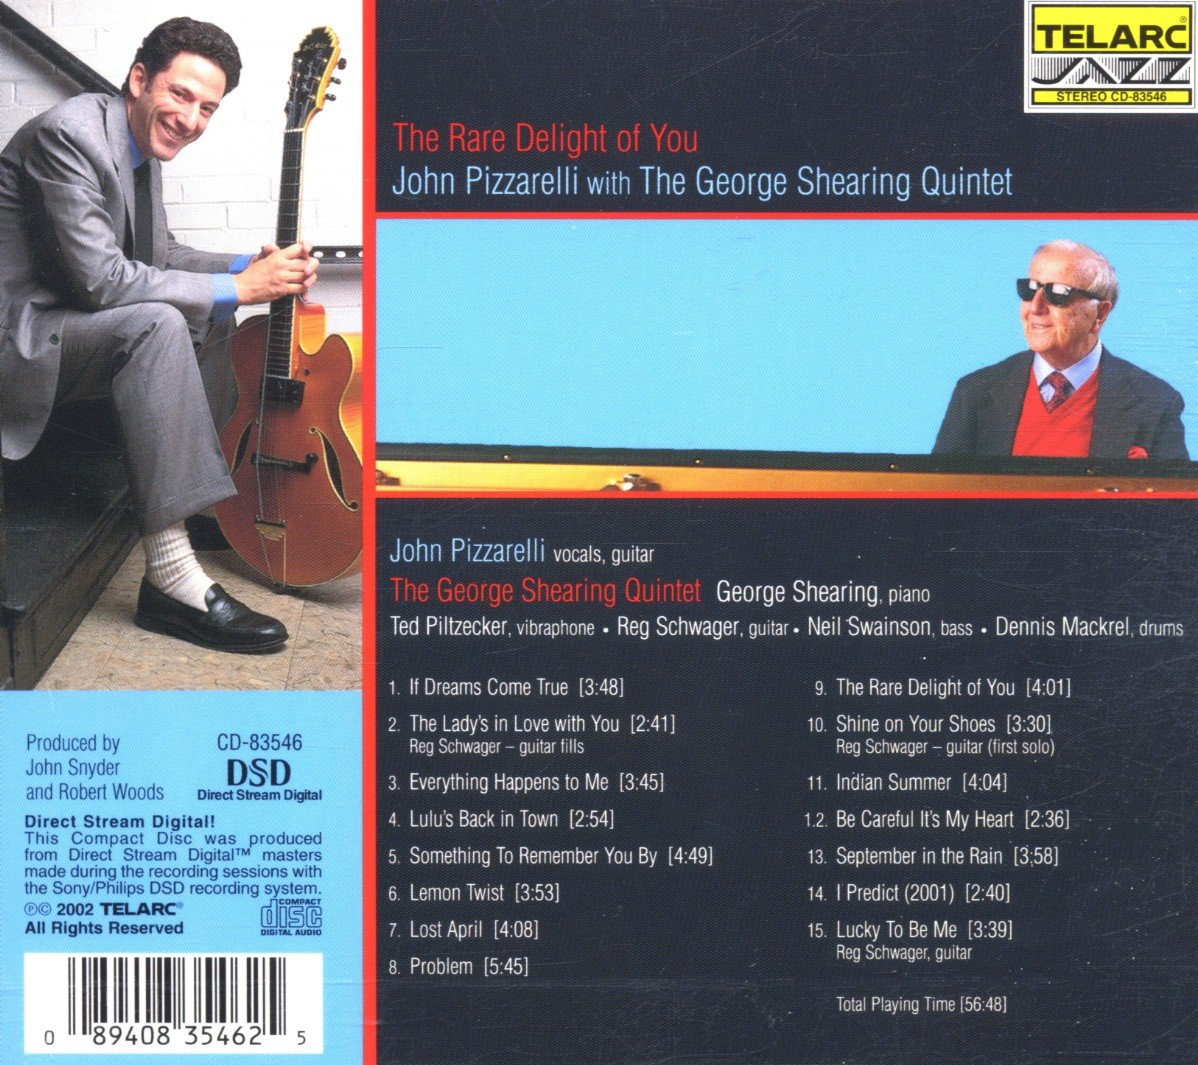 John Pizzarelli, George Shearing - The Rare Delight of You - Amazon